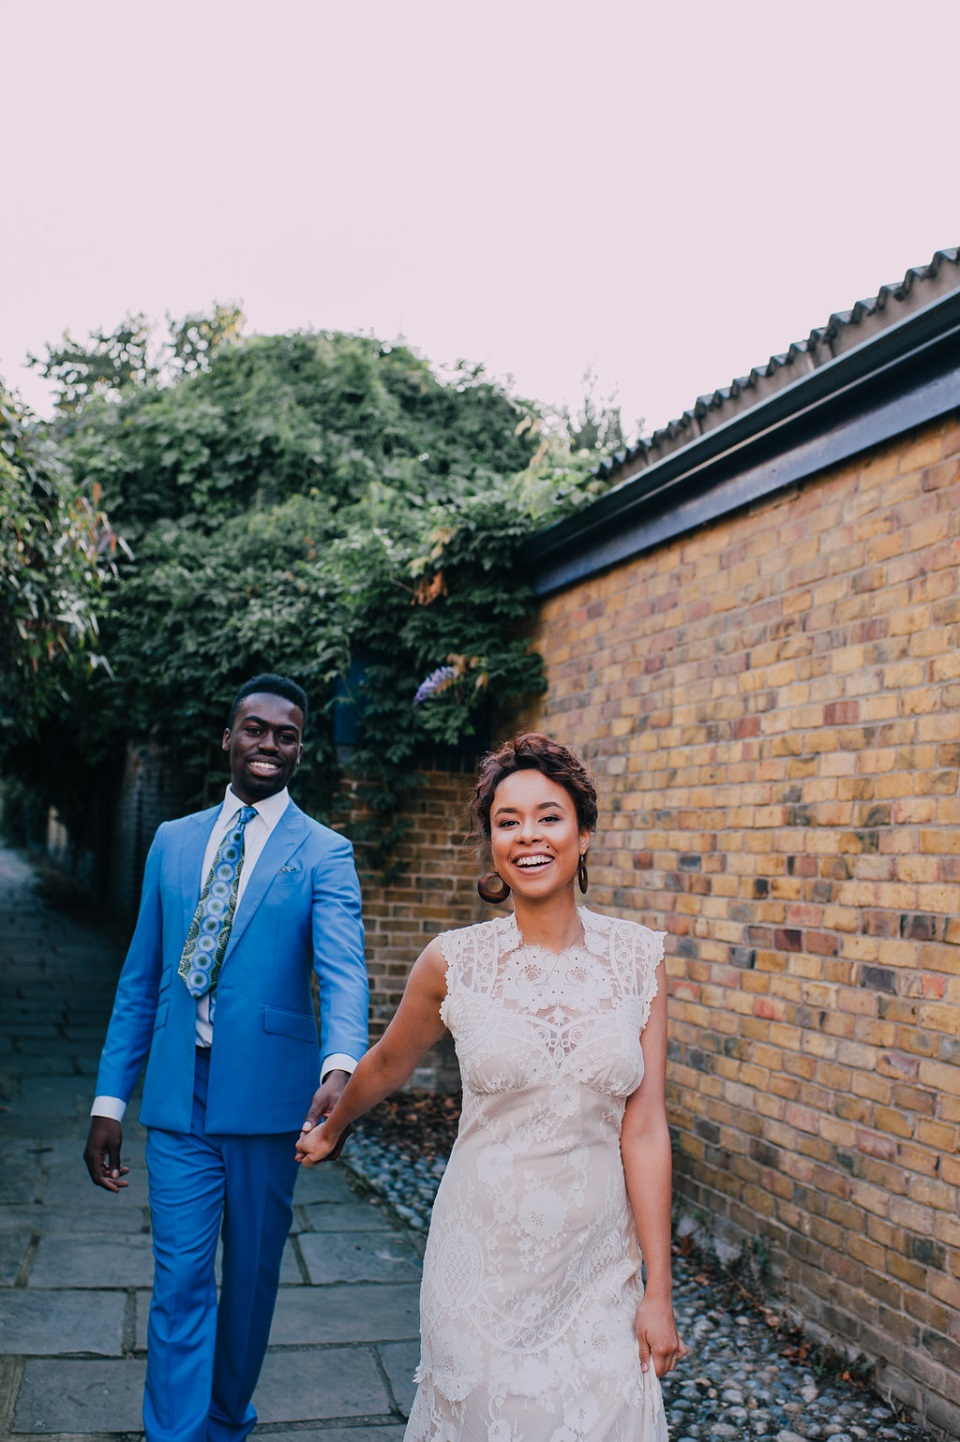 Nulyweds - Anne Schwarz Photography - London Wedding 82